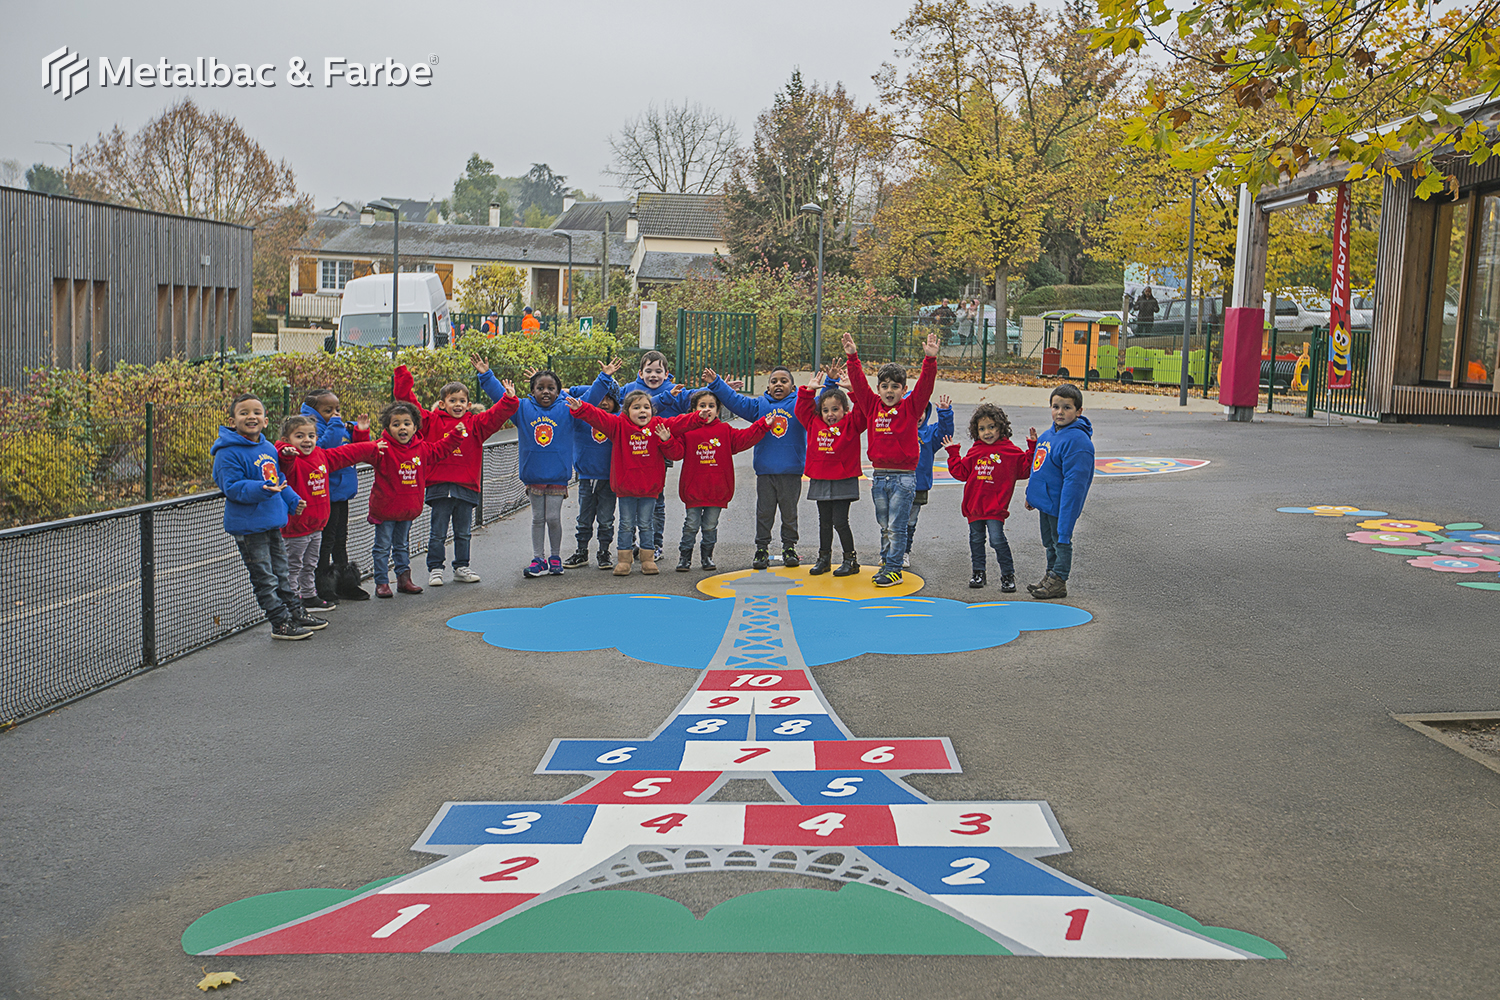 playground markings games; playground games for kids; outdoor play; math games; school yard games; educational games; asphalt games; interactive games; road markings signs; road traffic signs; parking lot stencils; caterpillar game; compass games